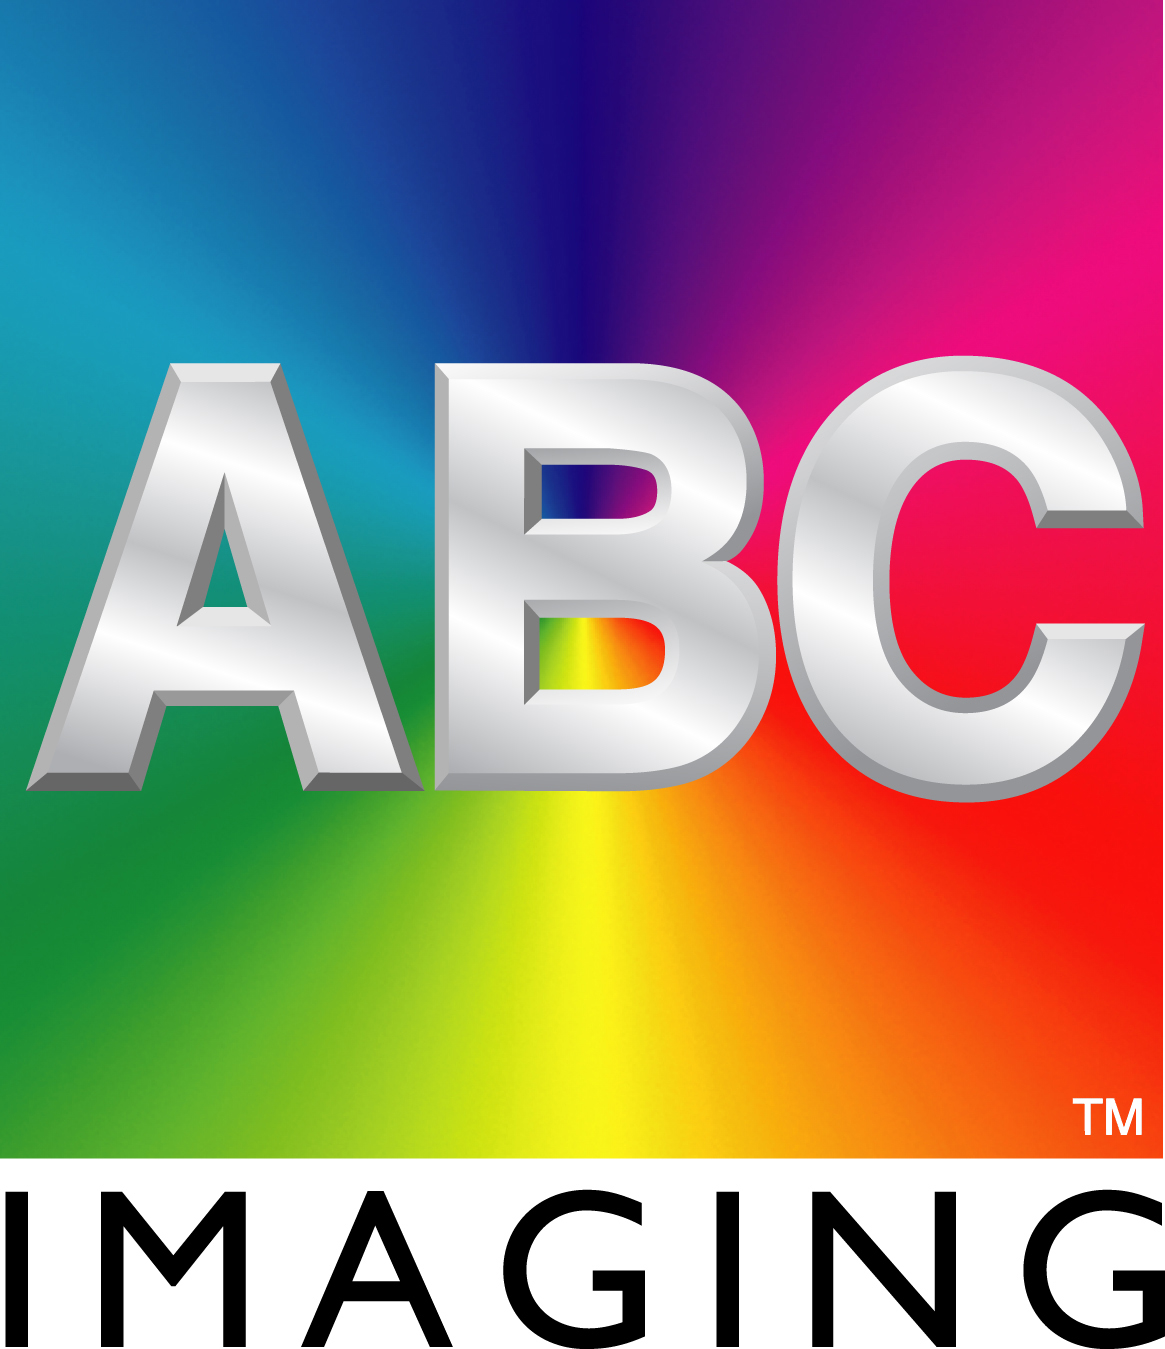 abc_imaging-new-logo.jpg